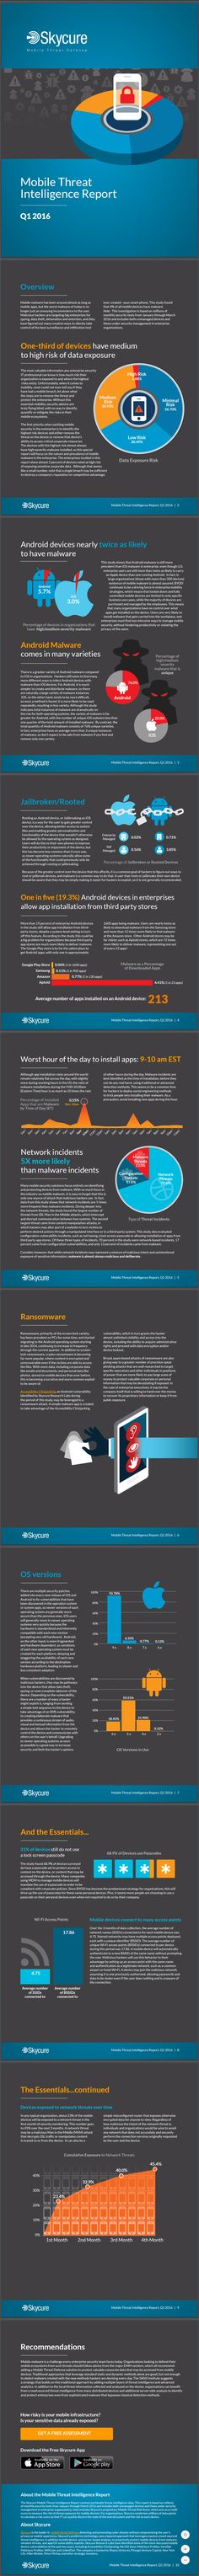 SkyCure - Mobile Threat Intelligence Report Q1 2016 - July 2016 #mobilesecurity